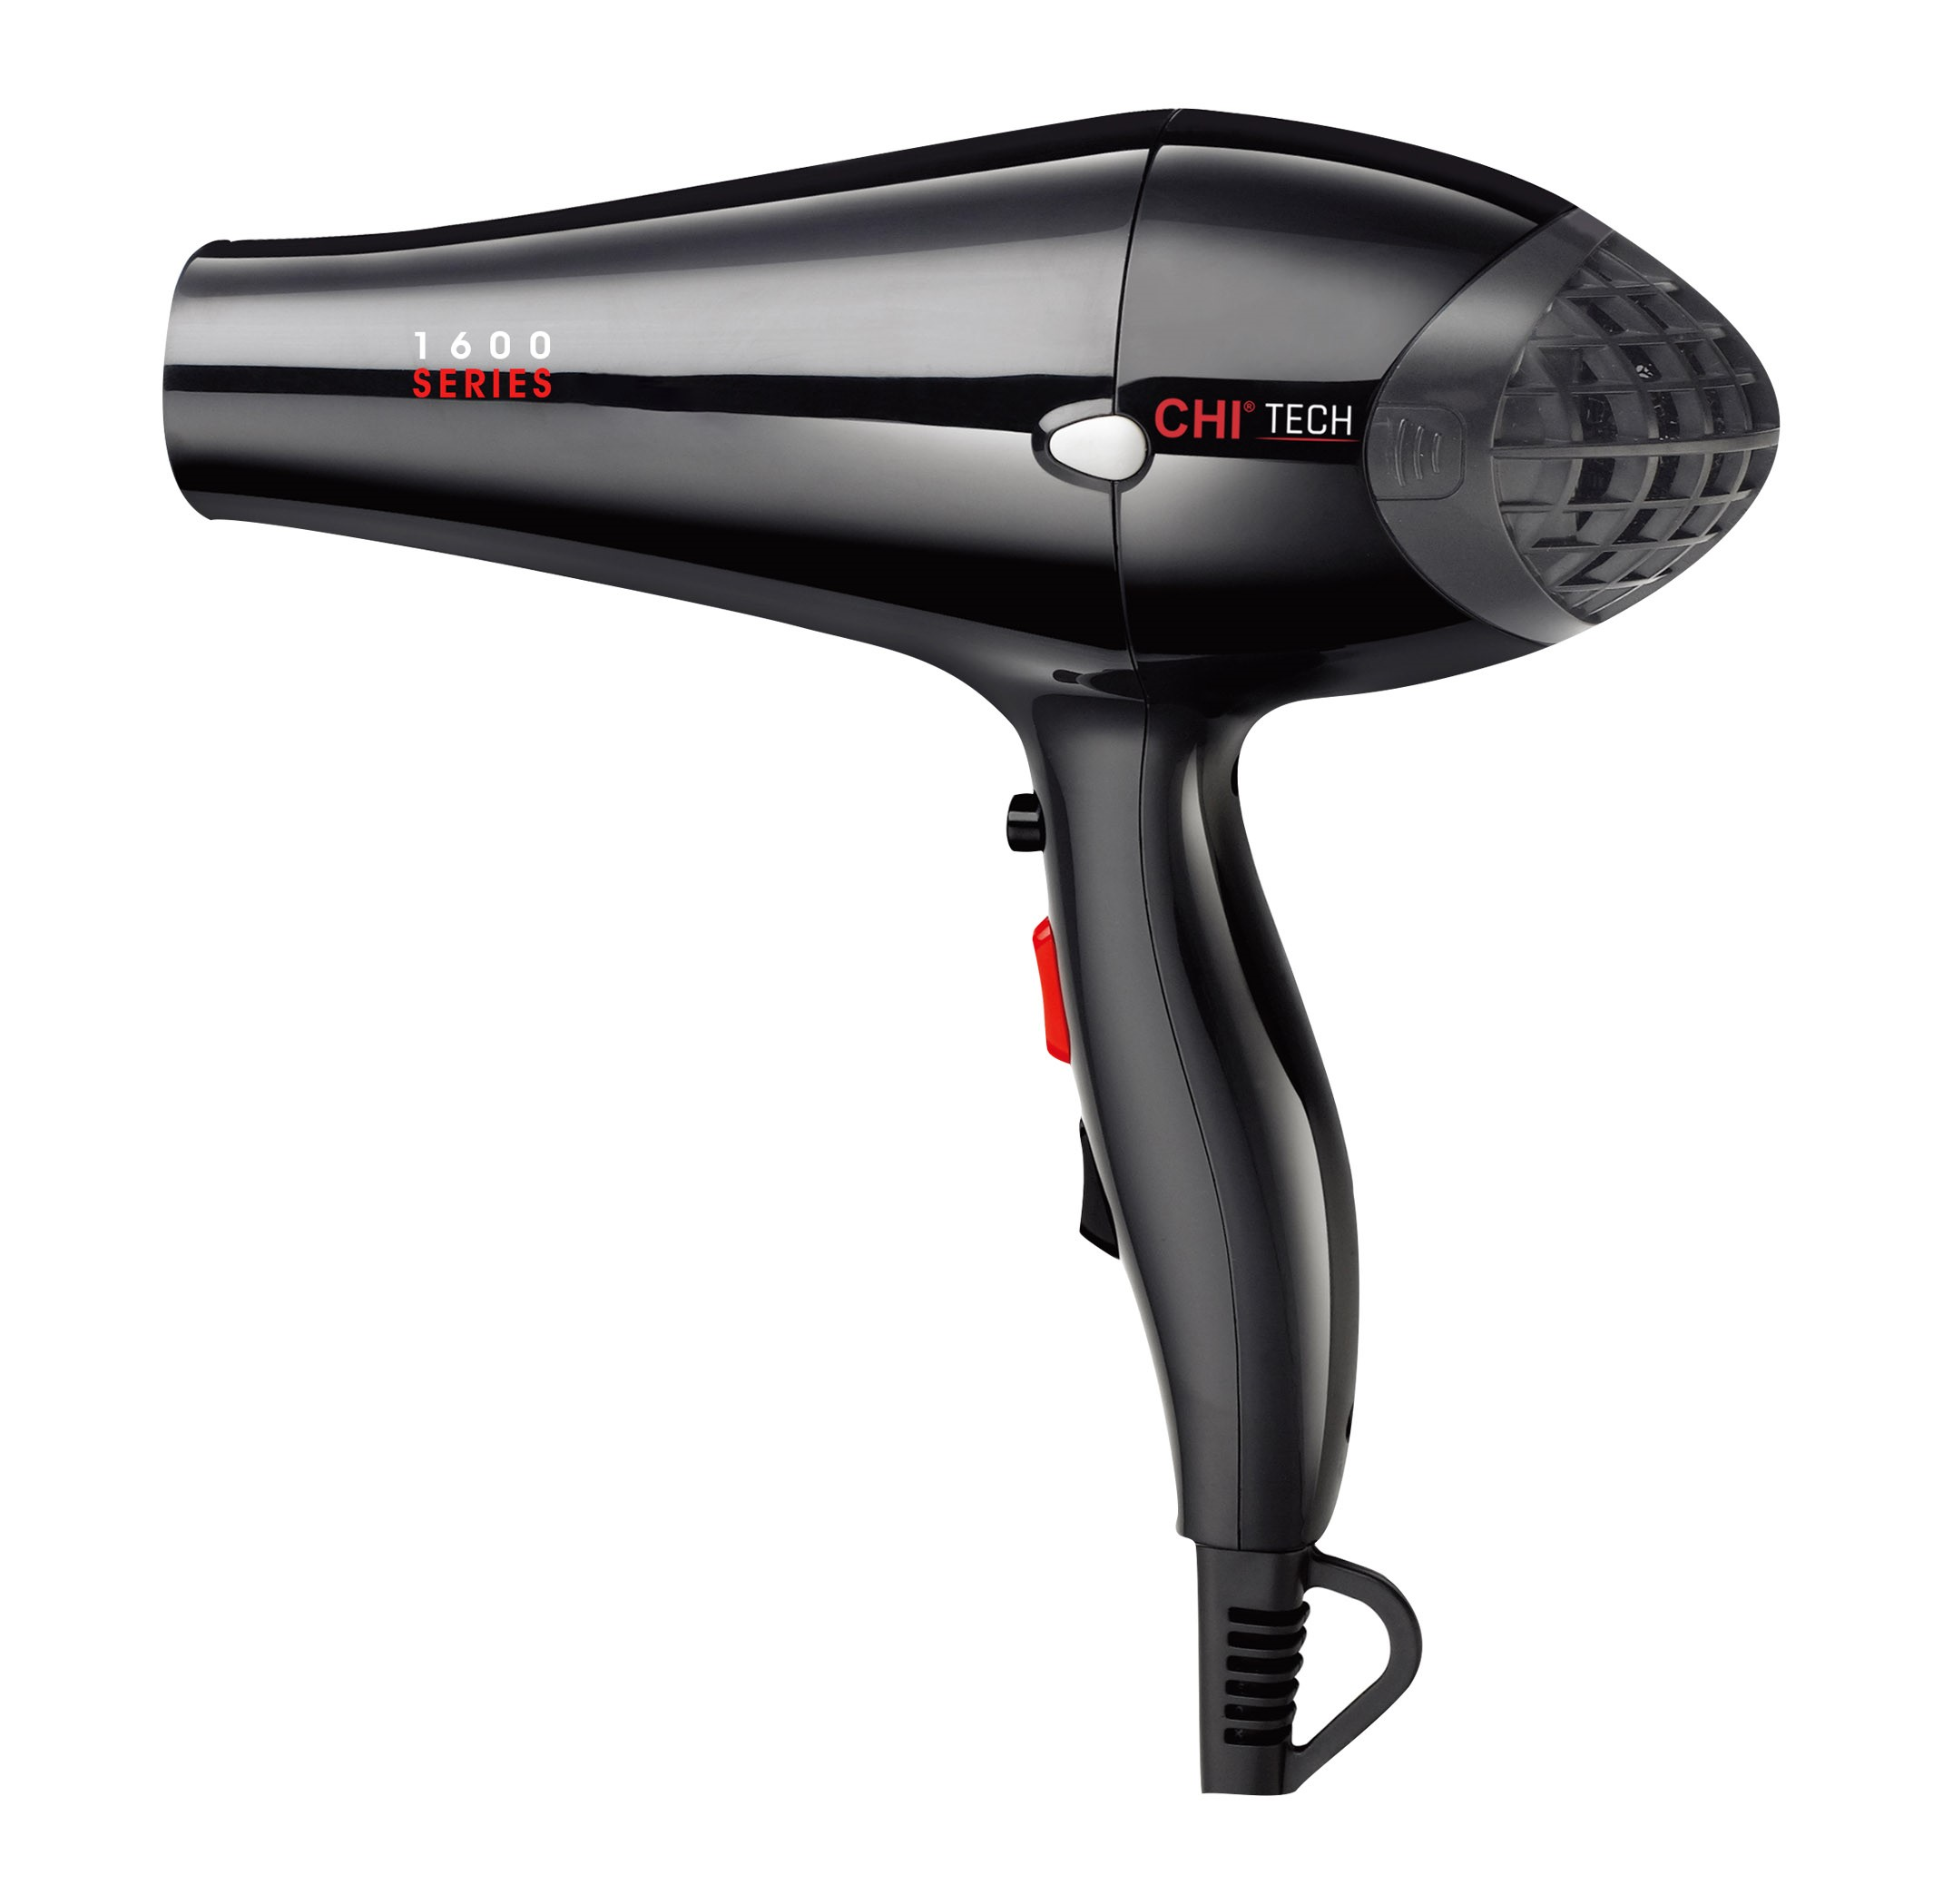 CHI Tech 1600 Series Hair Dryer